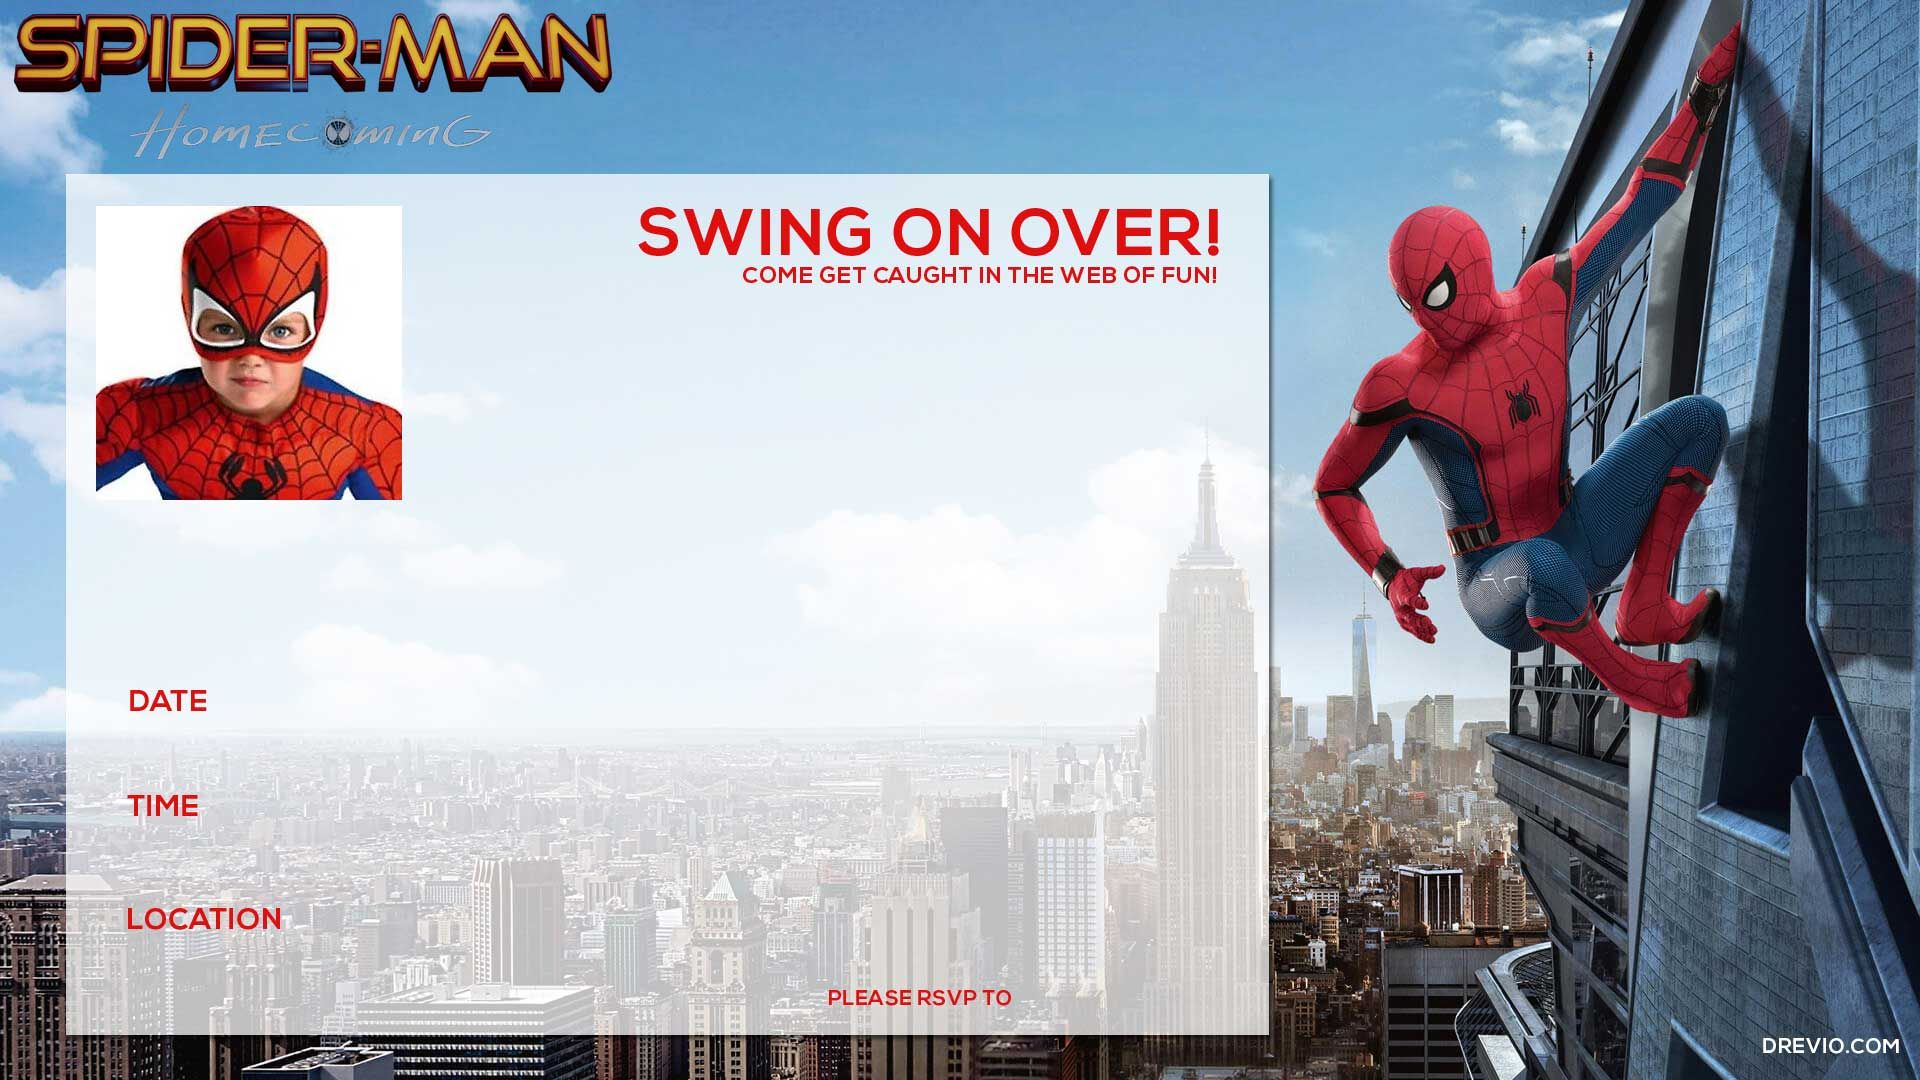 graphic regarding Printable Spiderman Invitations referred to as Spiderman invitation templates cost-free